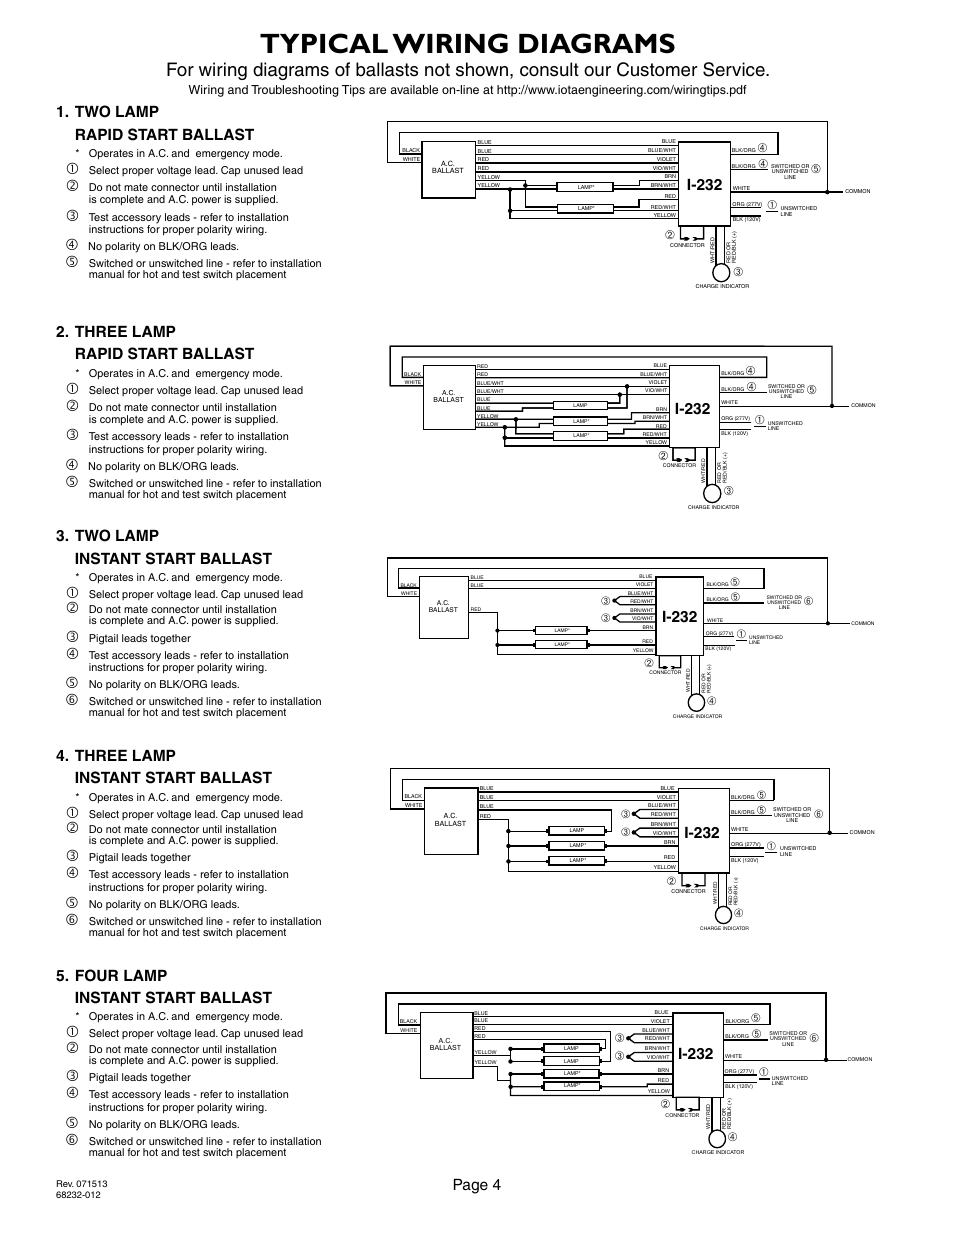 hight resolution of typical wiring diagrams page 4 i 232 iota i 232 user manual page 4 4